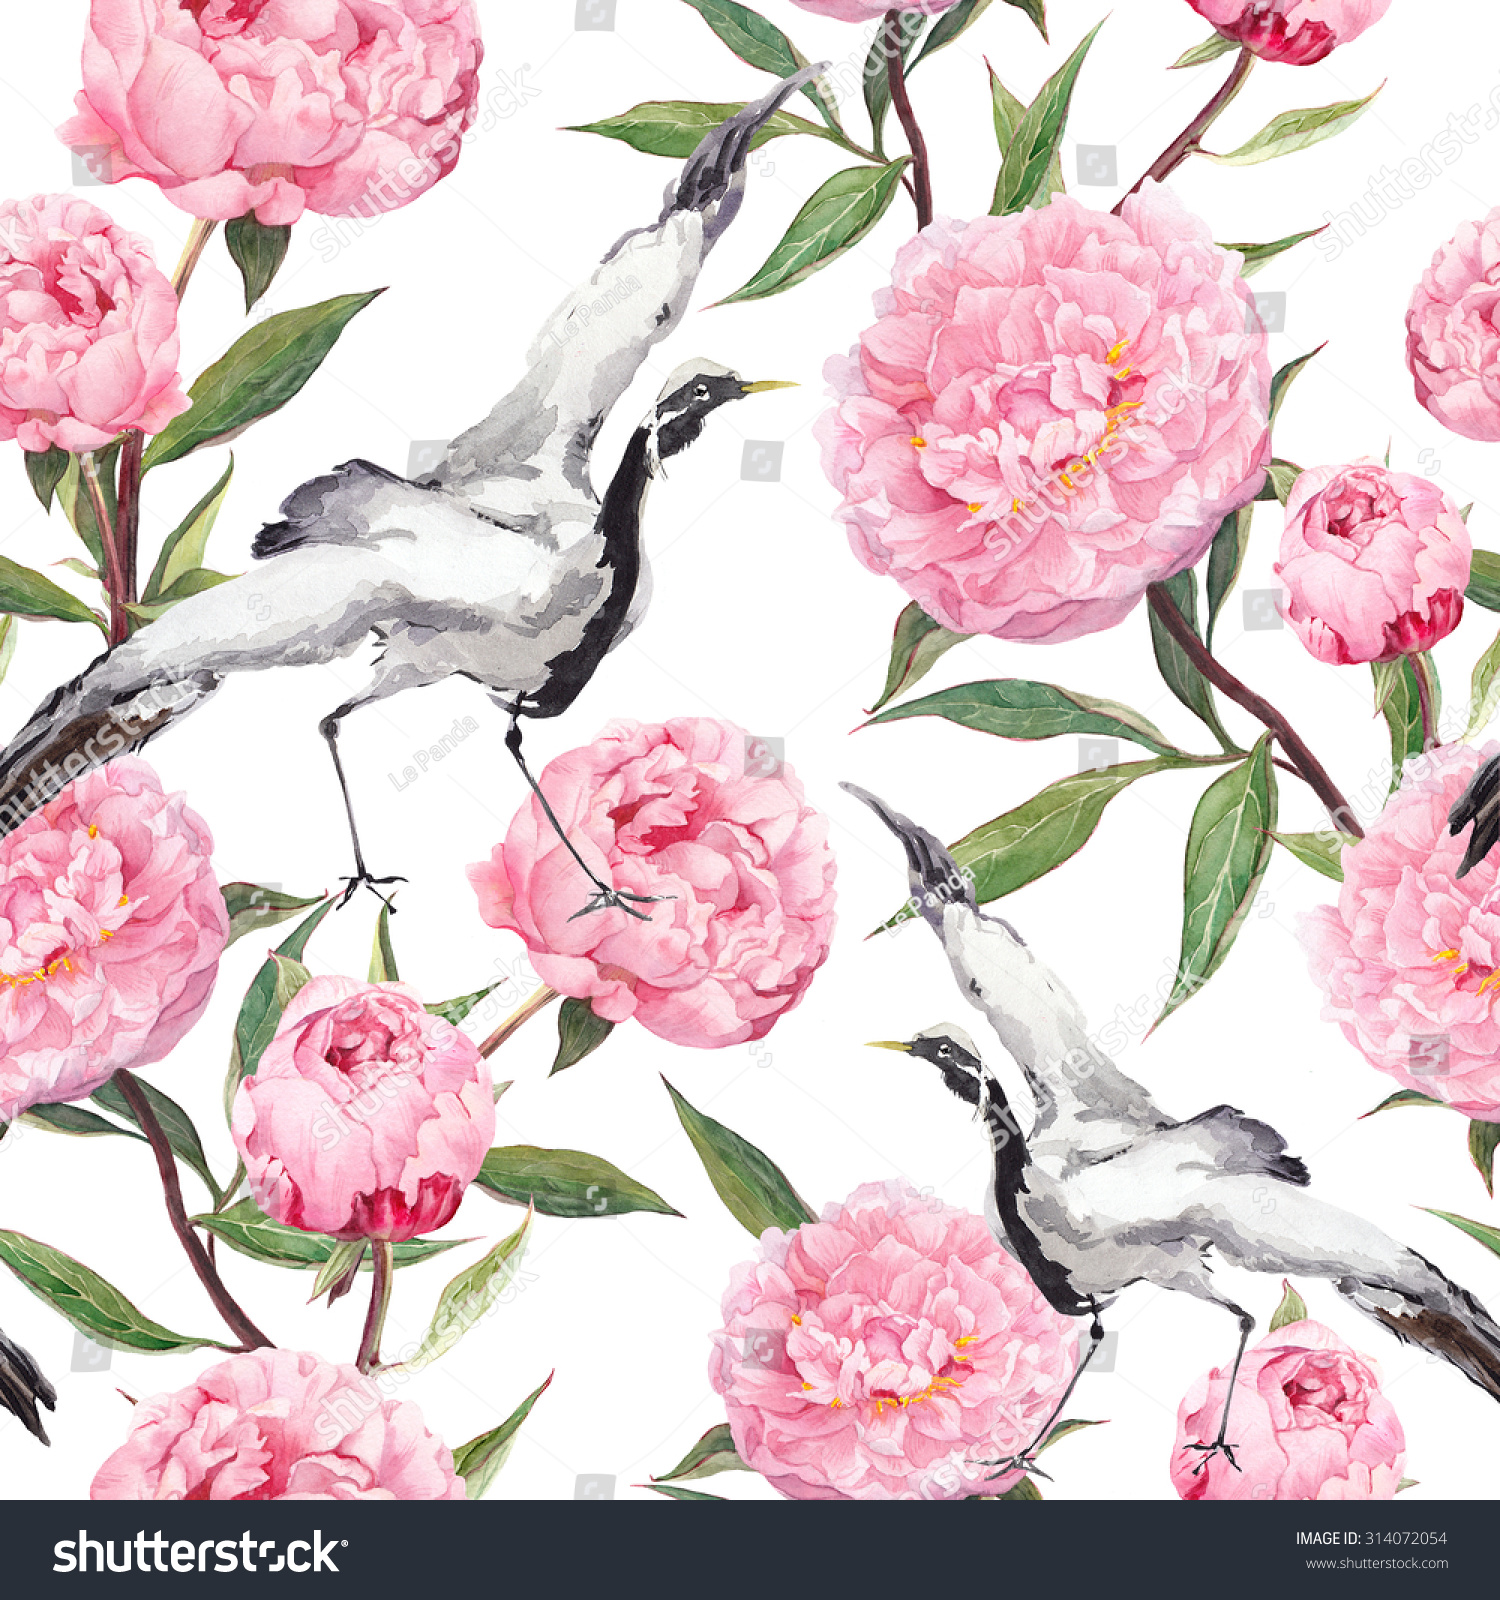 Peony flower isolated on white stock vector 368014568 shutterstock - Crane Birds Dance In Pink Peony Flowers Floral Repeating 1500x1600 Peony Seamless Pattern Stock Vector Colourbox 800x800